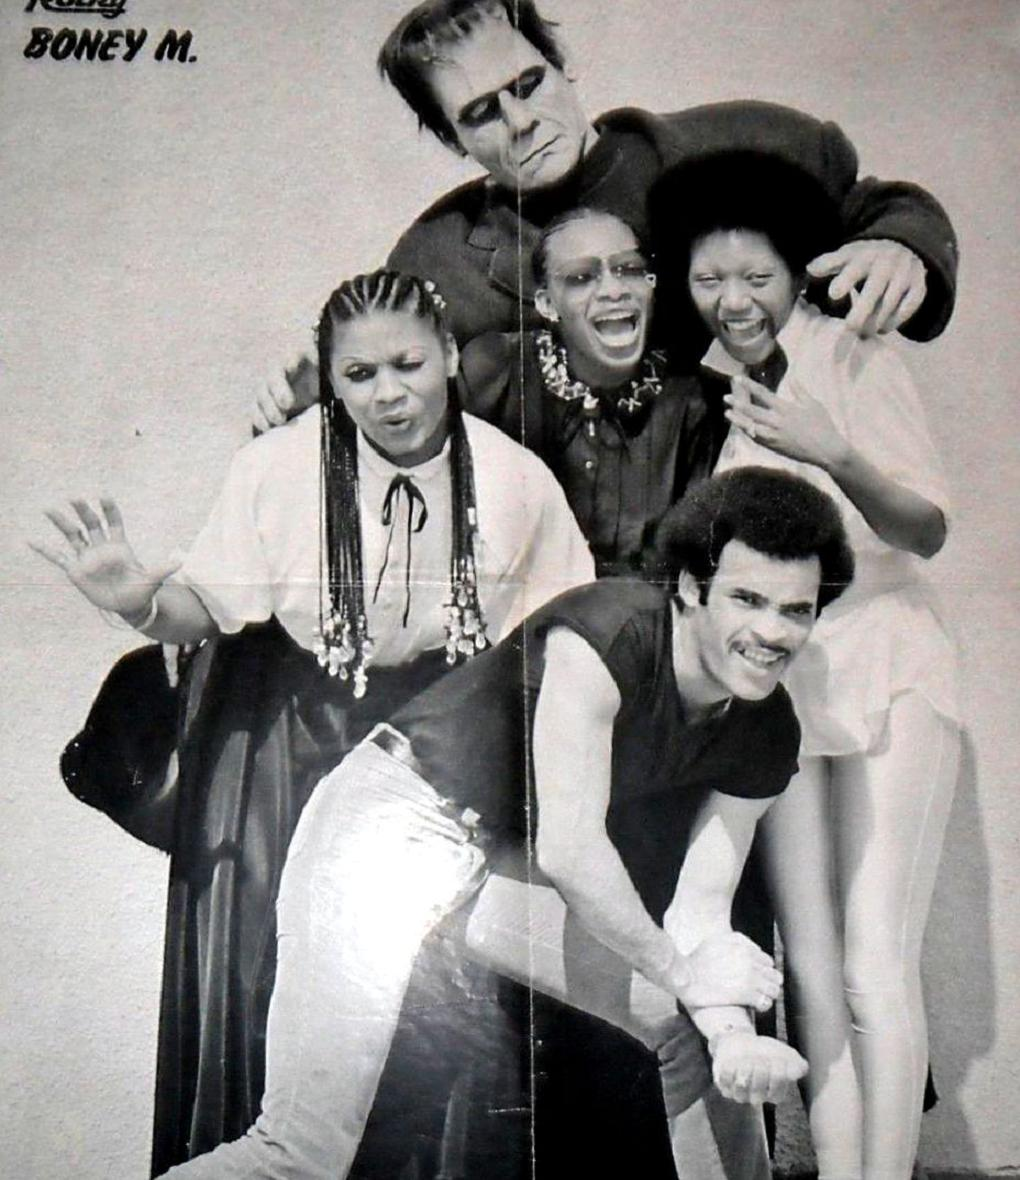 Boney M. - The Maxi-Singles Collection Volume 4: Extended Version